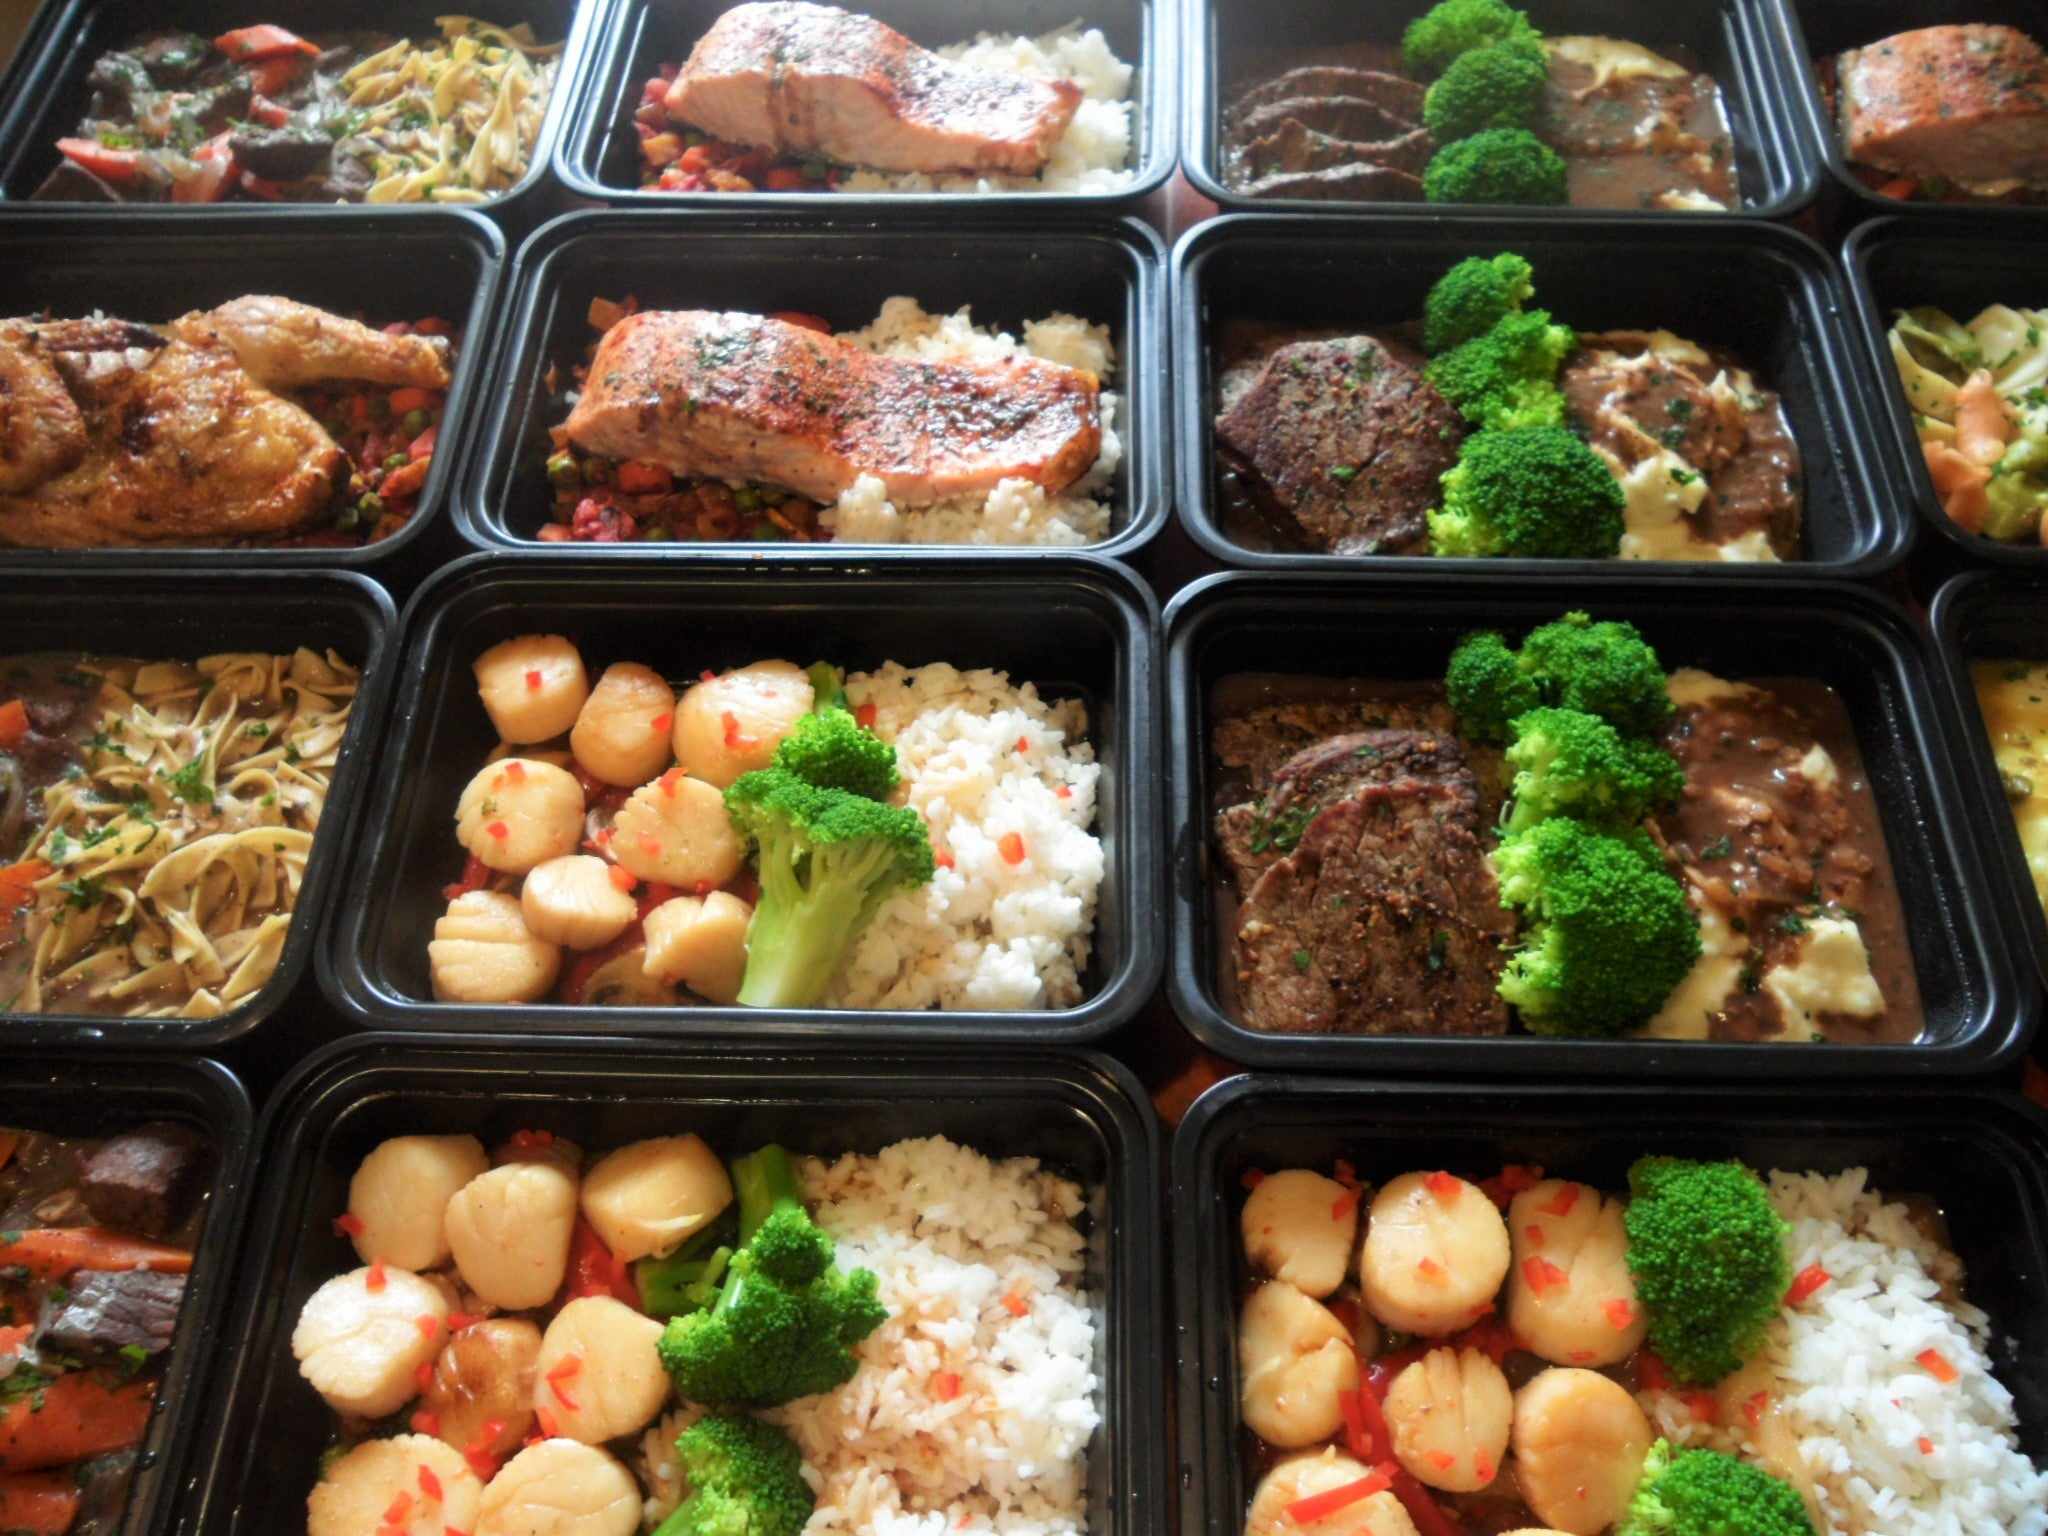 Meal Delivery Service In Washington D C Maryland Md Virginia Va Dinners At Your Door